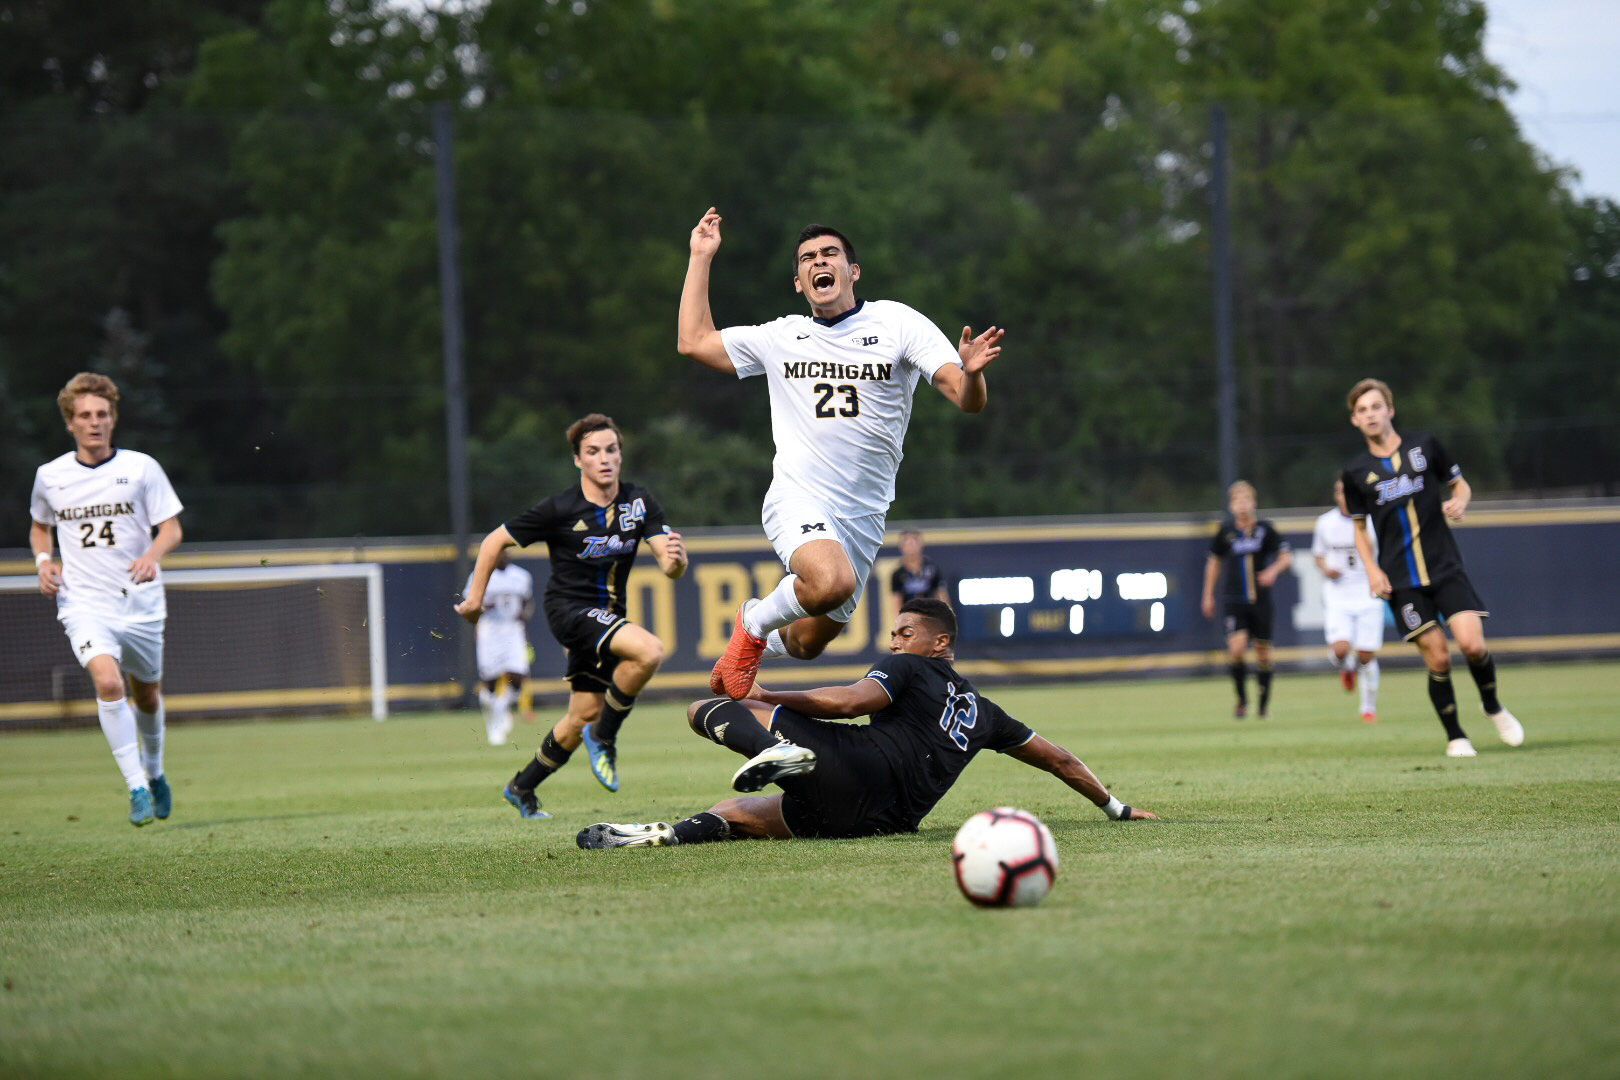 Marc Ybarra (23) is tackled during Michigan's 2-1 loss to Tulsa on Friday